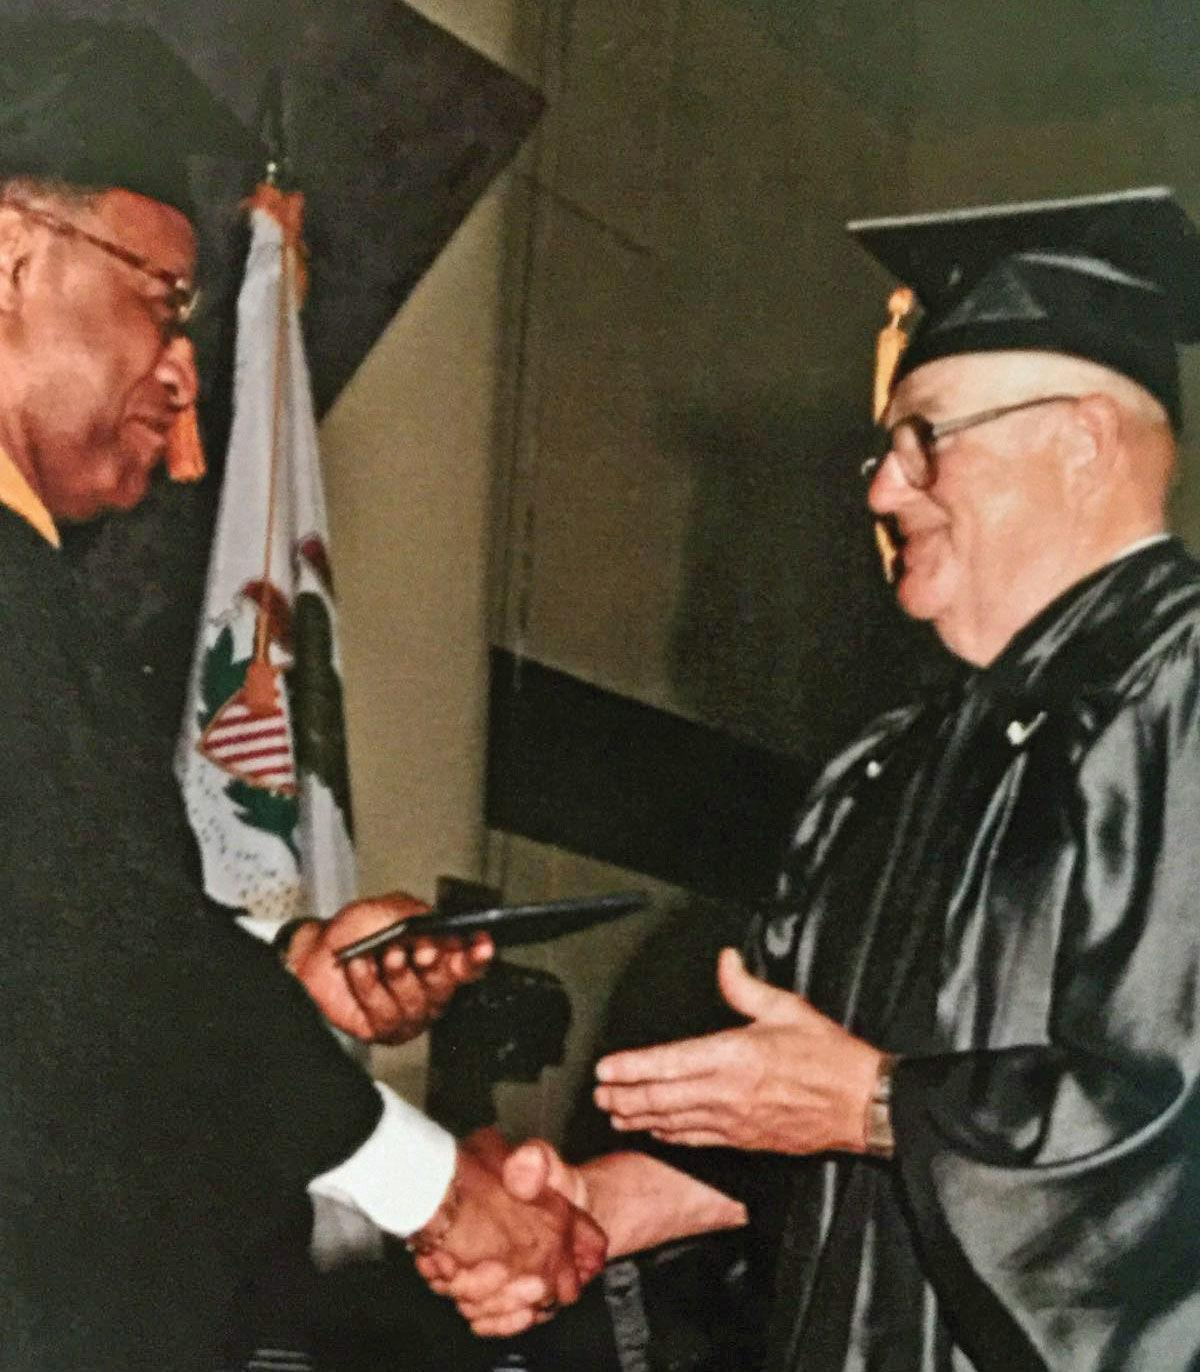 Dick Smerz, a Korean War Navy veteran graduates